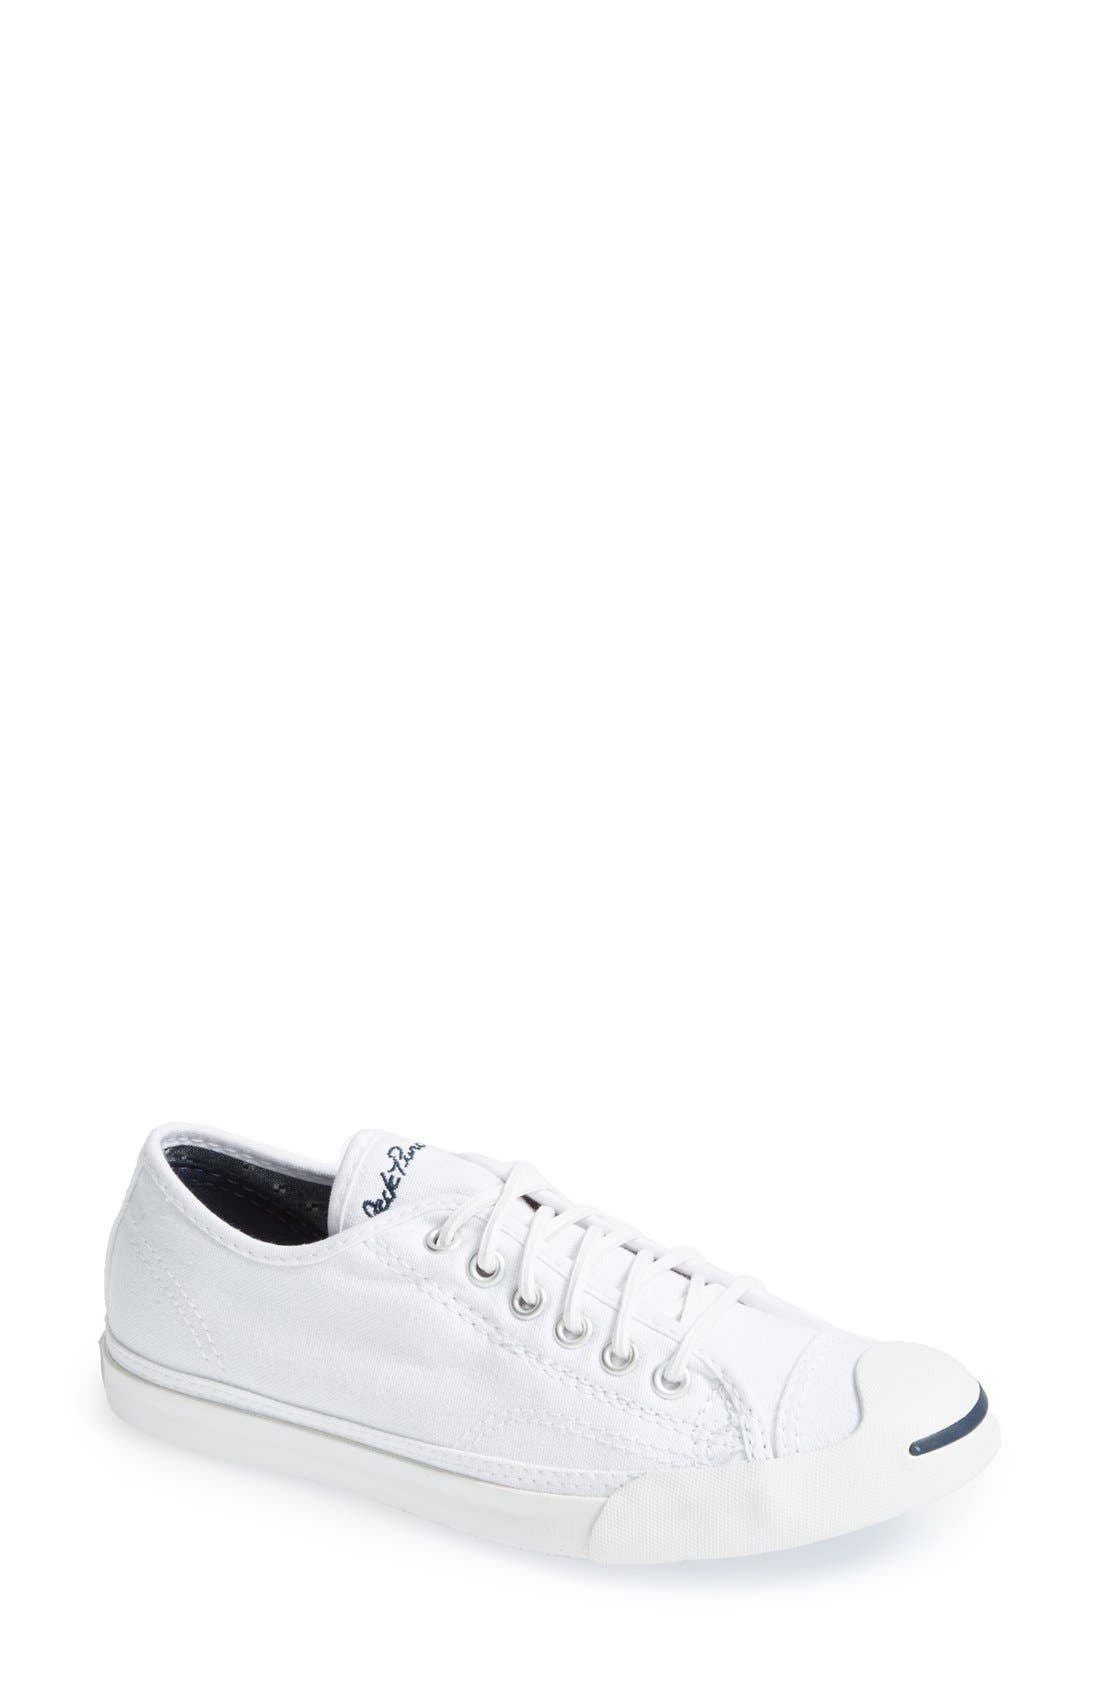 Alternate Image 2  - Converse Jack Purcell Low Top Sneaker (Women)